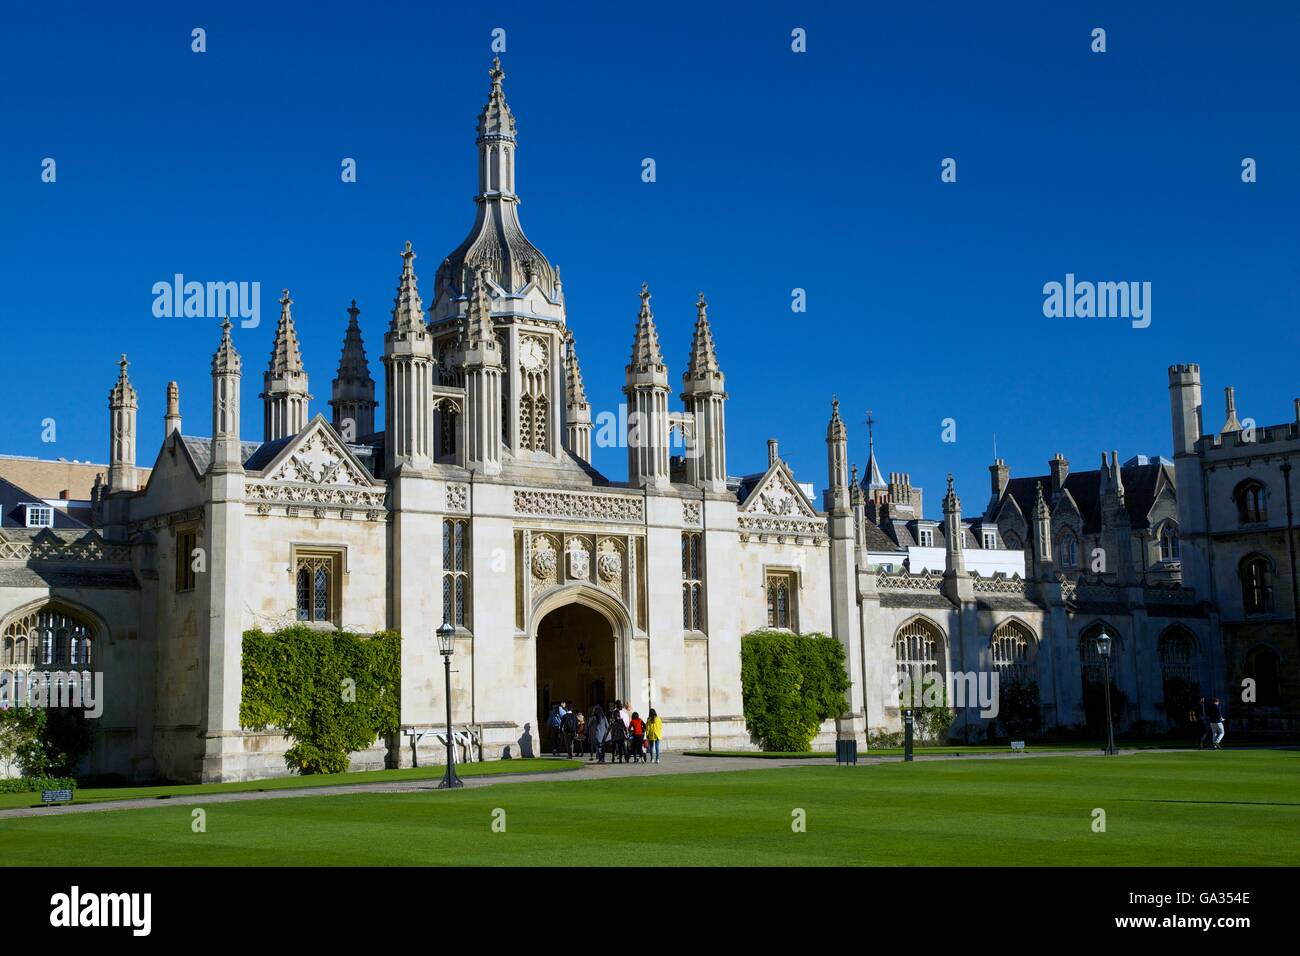 Gatehouse and Front Court, King's College,  Cambridge University, Cambridgeshire, England, UK, GB, Europe - Stock Image